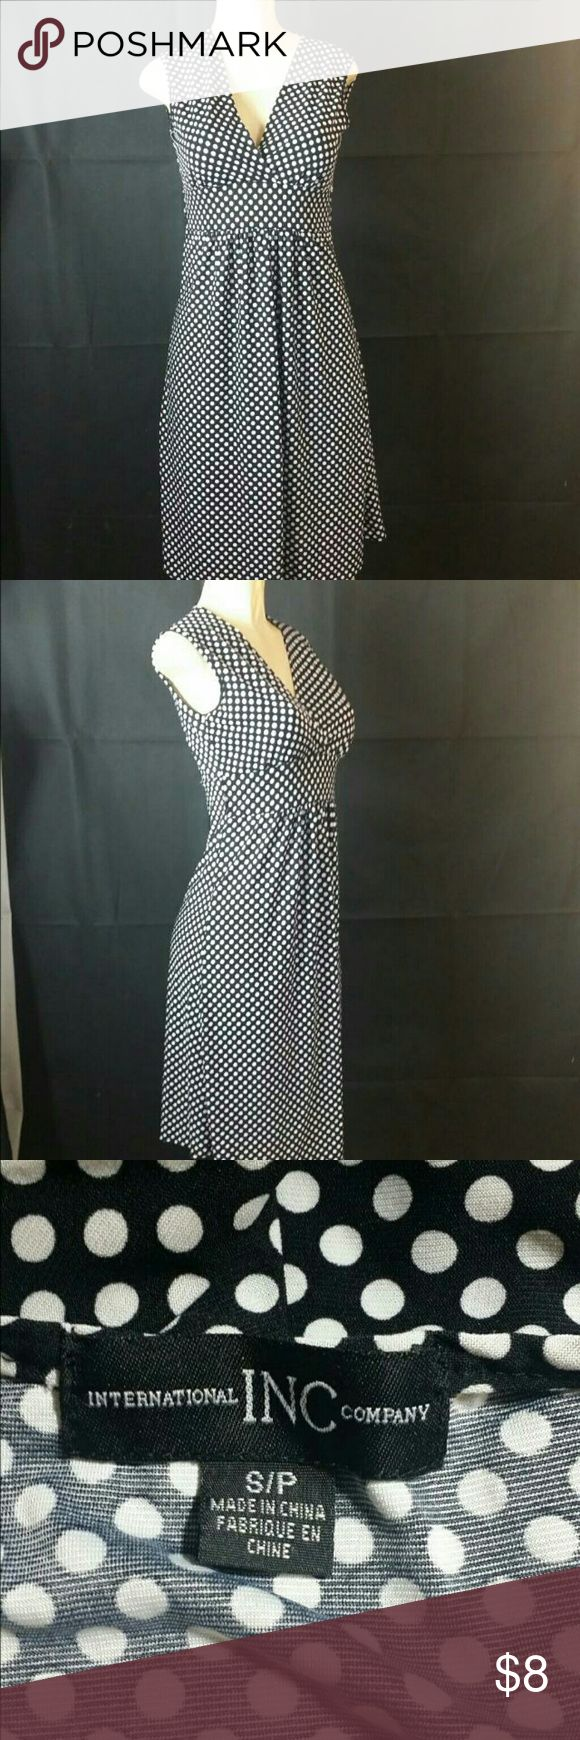 I. N.C International Concepany Polka-dots Dress I. N.C International Company  Women's Casual black polka-dots Dress, knee-length. Size S-petite, V-neck, sleeveless, comes as closeout/Return/salvage merchandise, without tag, looks like is been used before, overall is in good cosmetic condition clean, no stains are present, please check the pictures for actual cosmetic condition. I. N.C International Company  Dresses Midi